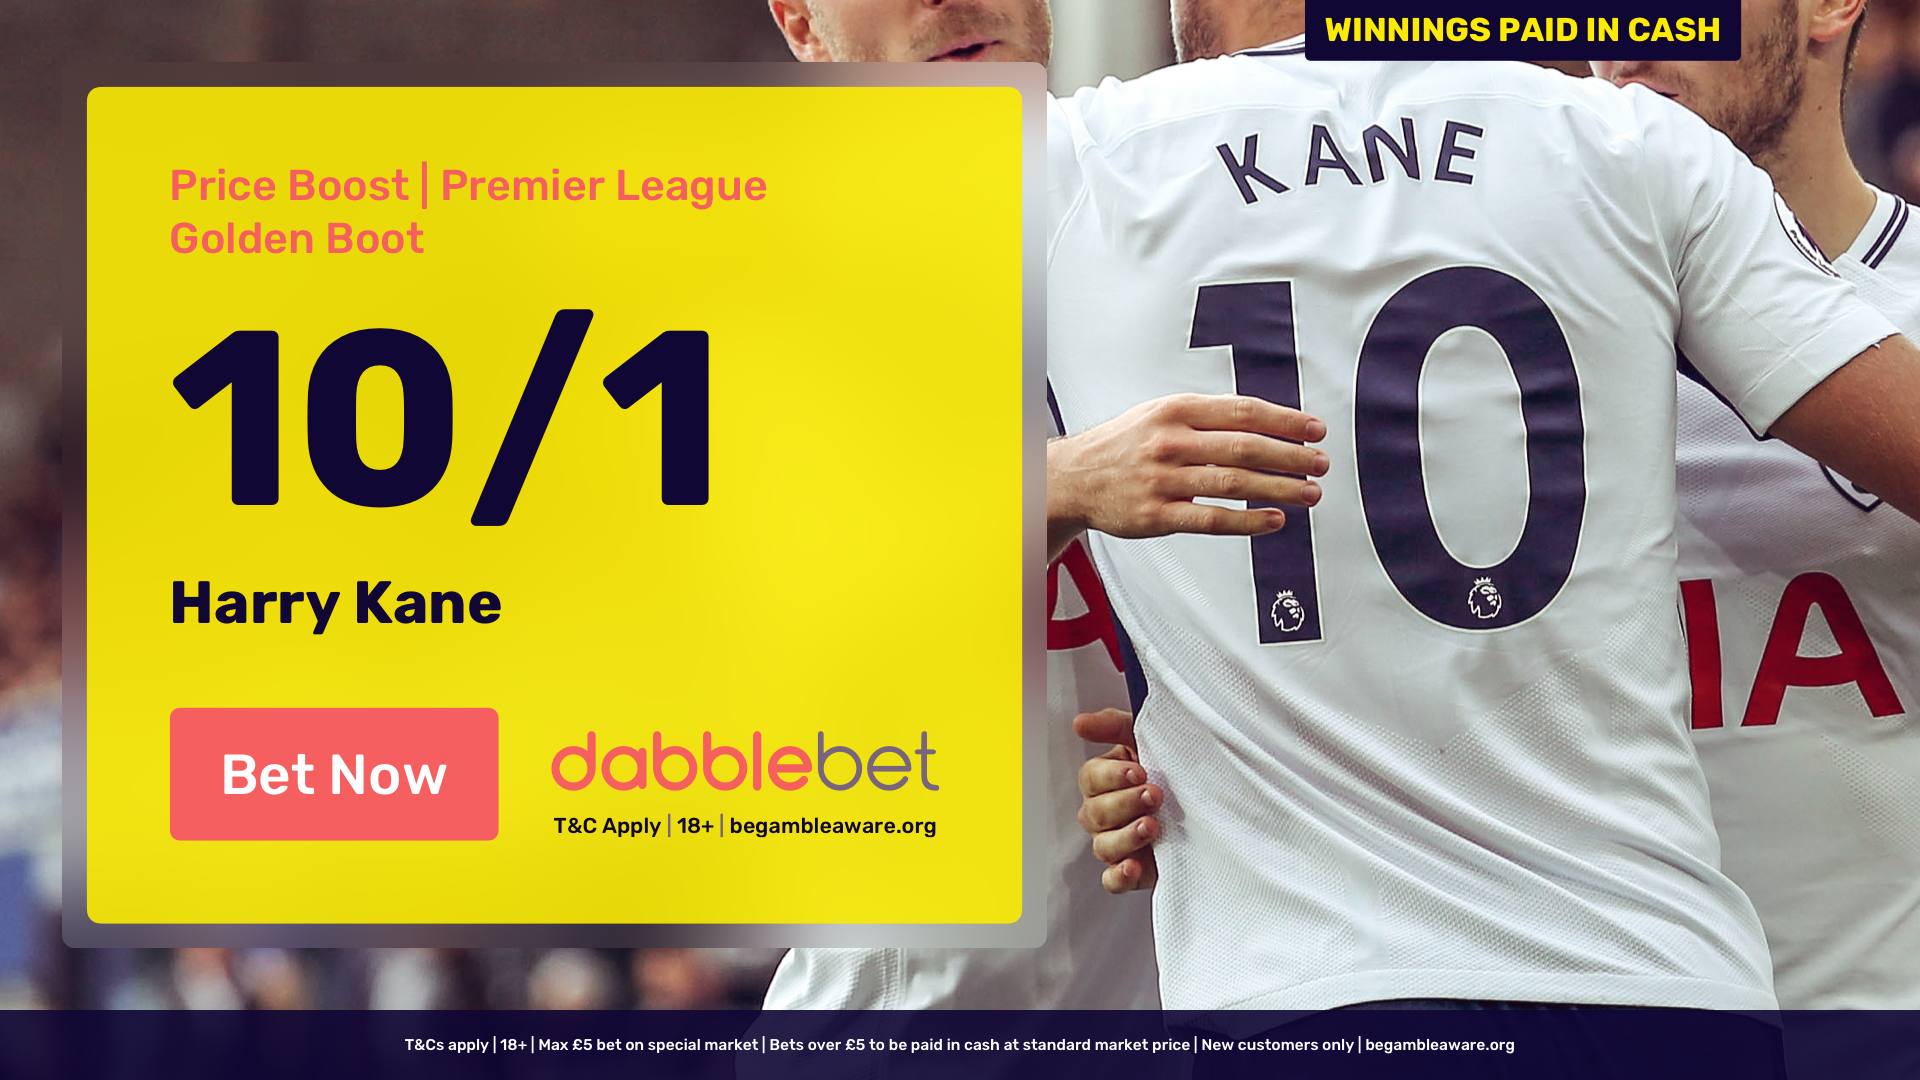 Kane dabblebet Golden Boot new customer offer in article